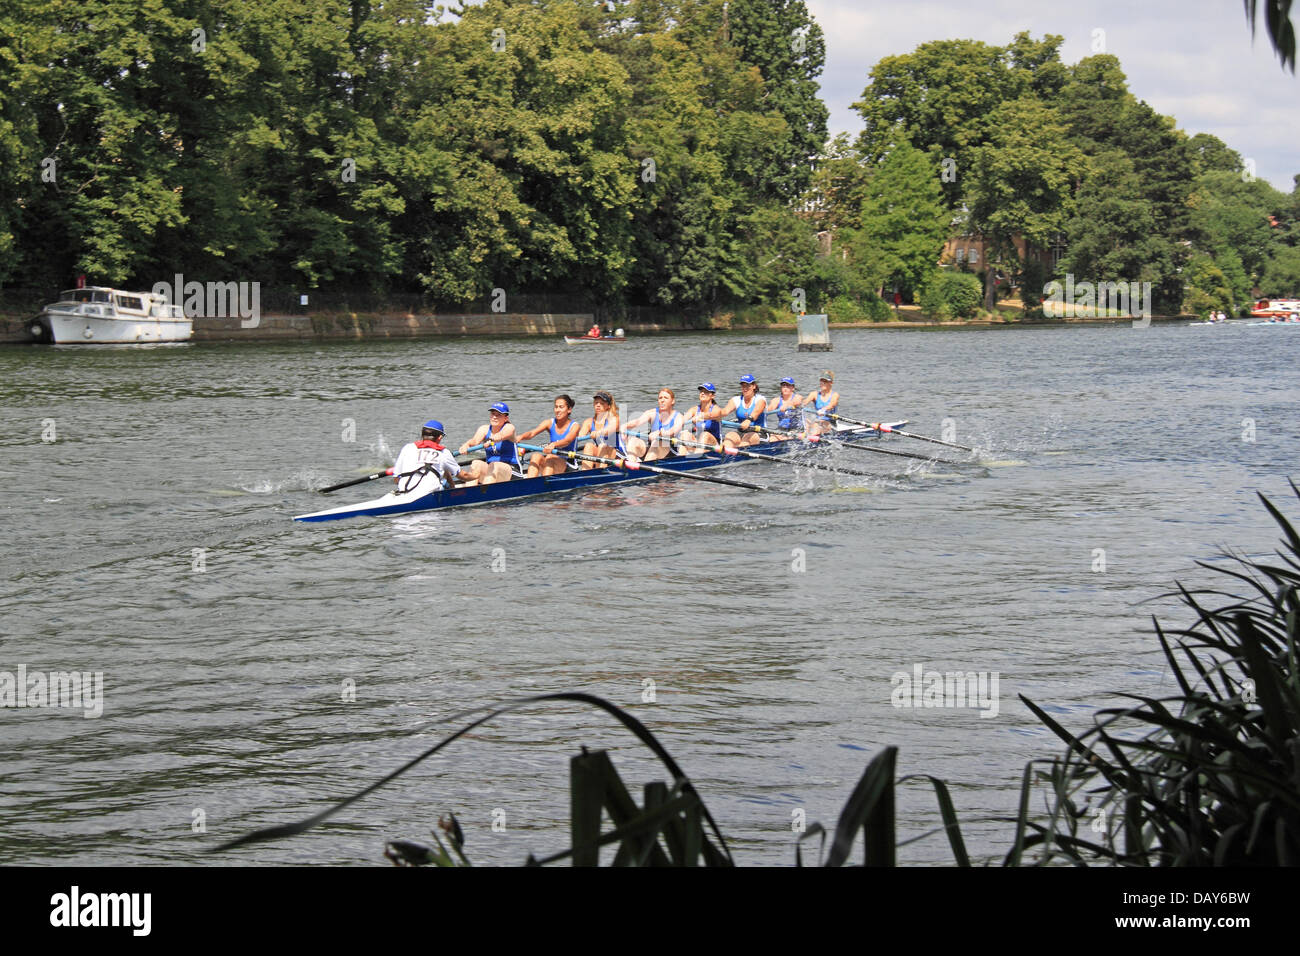 Sons of the Thames Rowing Club women's coxed eight at Molesey Amateur Regatta, 20th July 2013, River Thames, - Stock Image